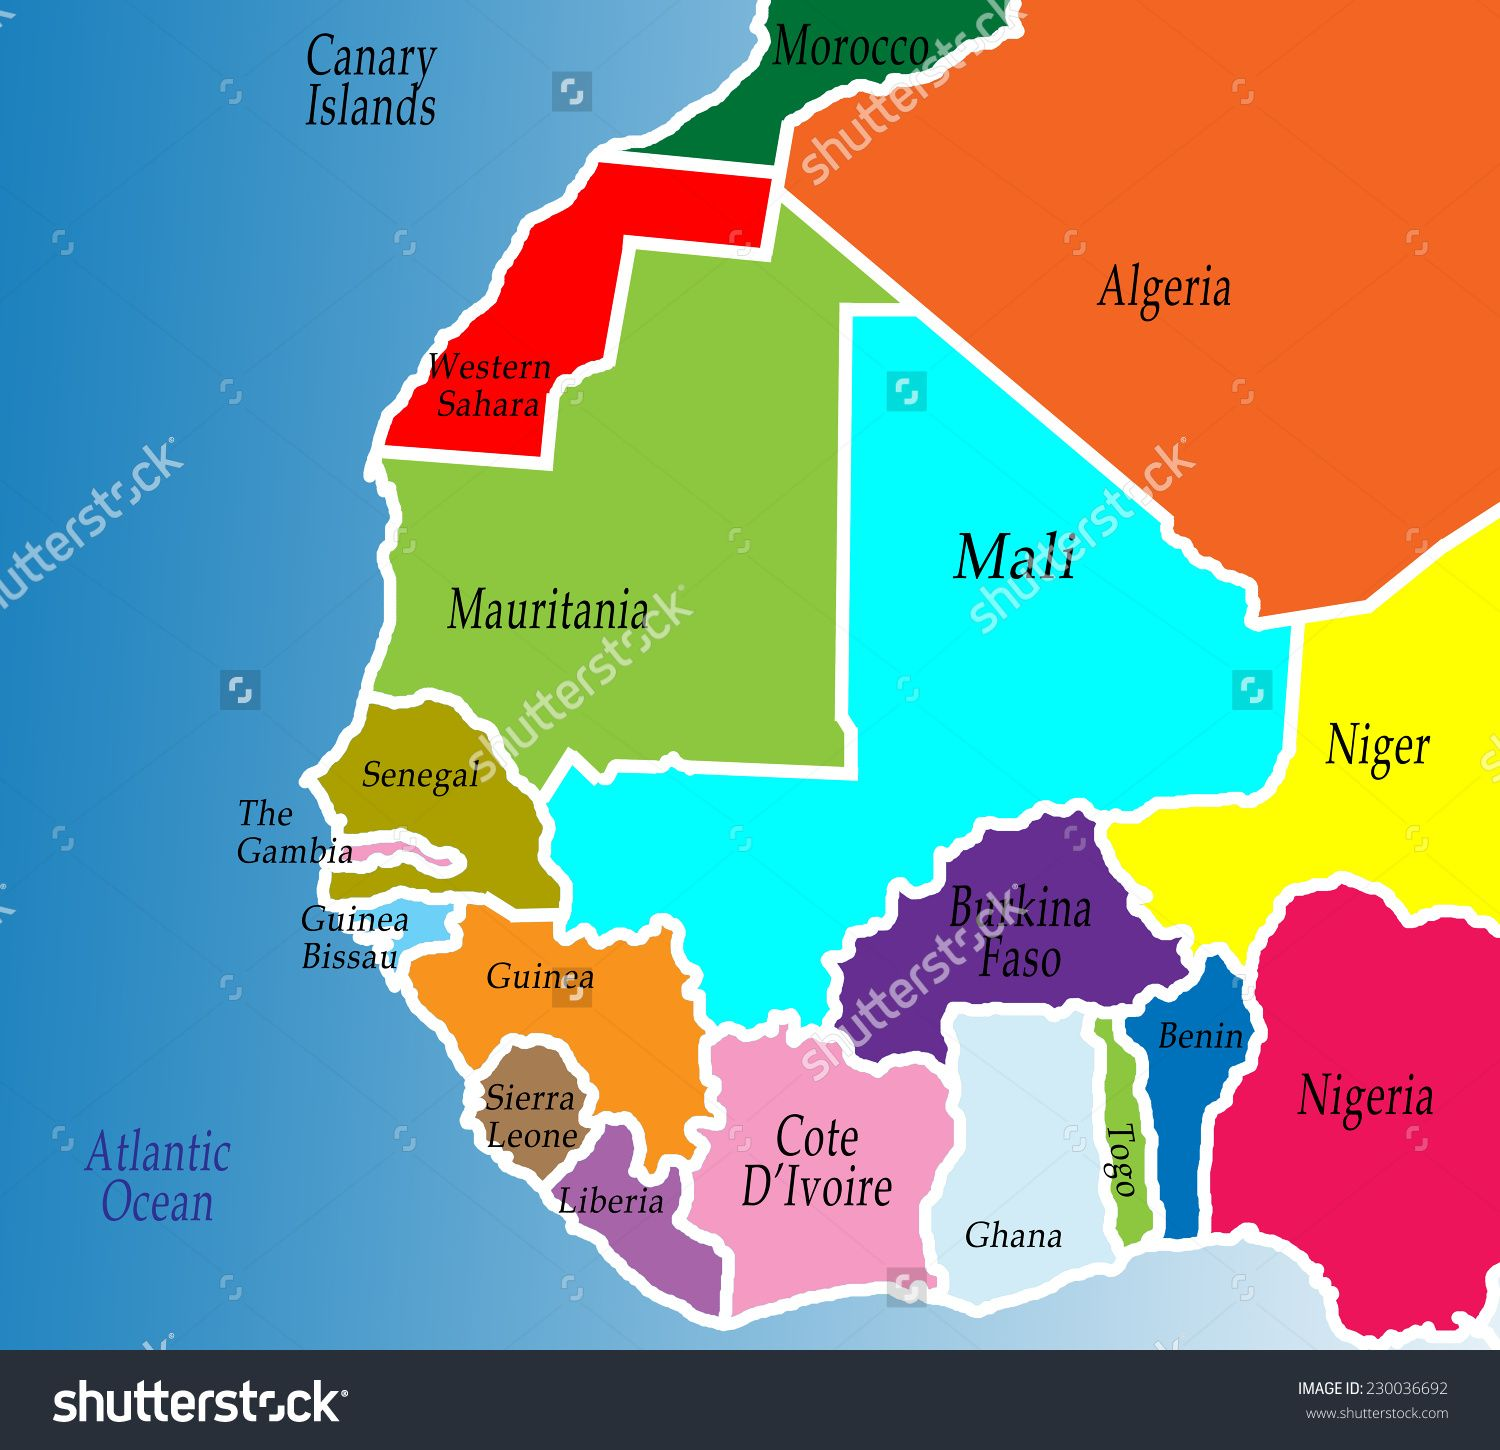 A political map of West Africa. Colorful, bright, simple